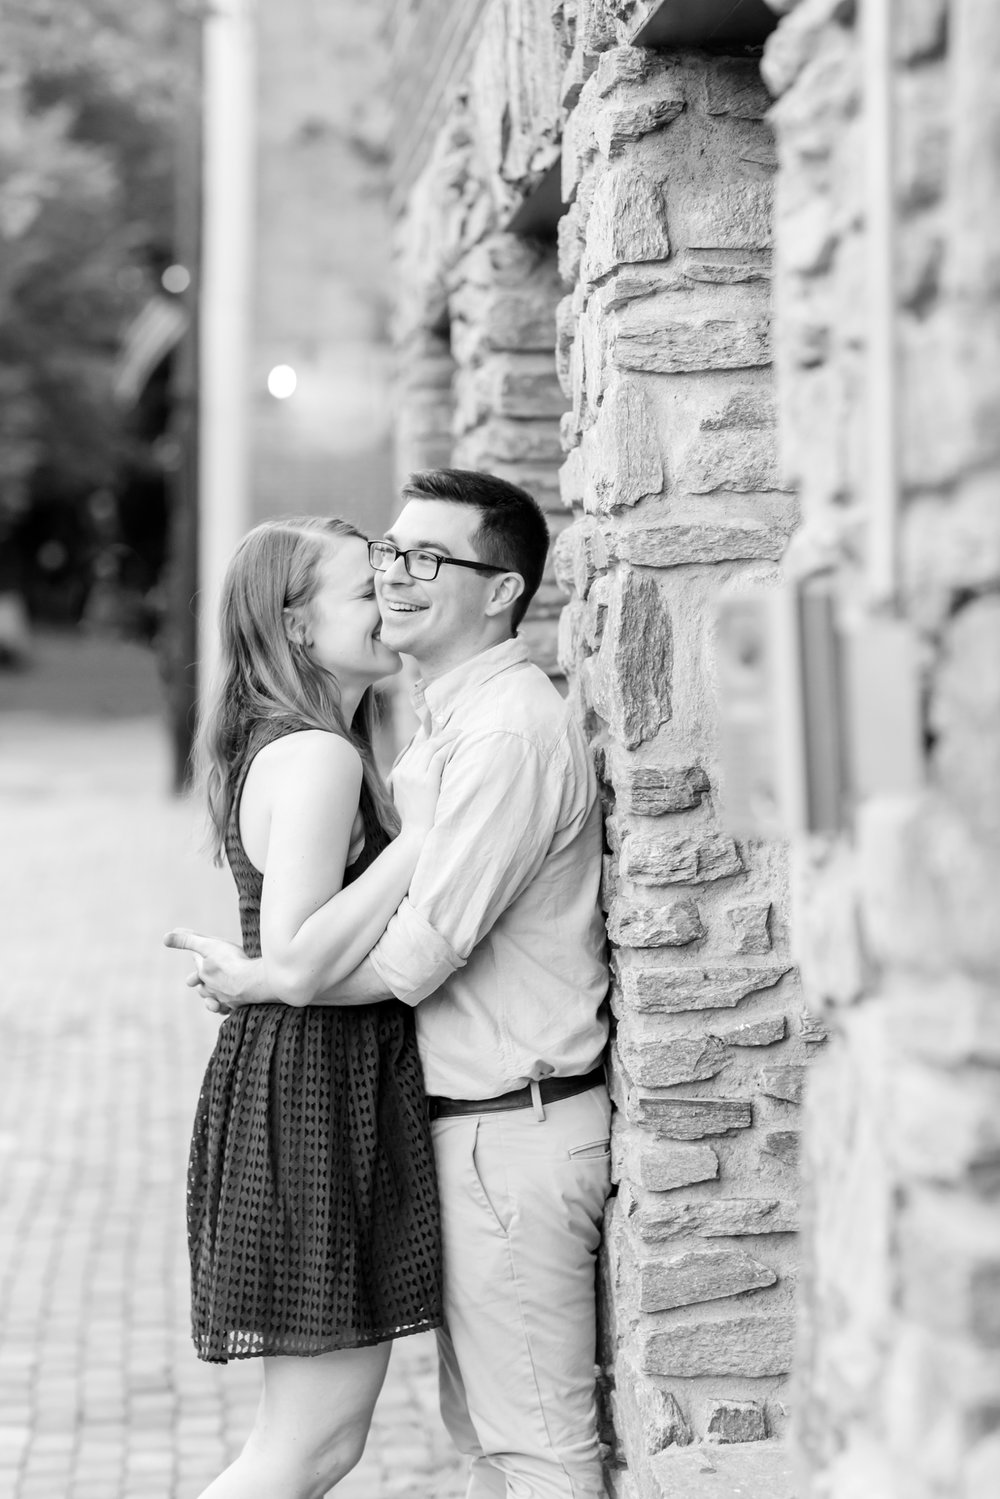 Lindy & Chris Engagement-176_virginia-engagement-photographer-old-town-alexandria-engagement-anna-grace-photography-photo.jpg